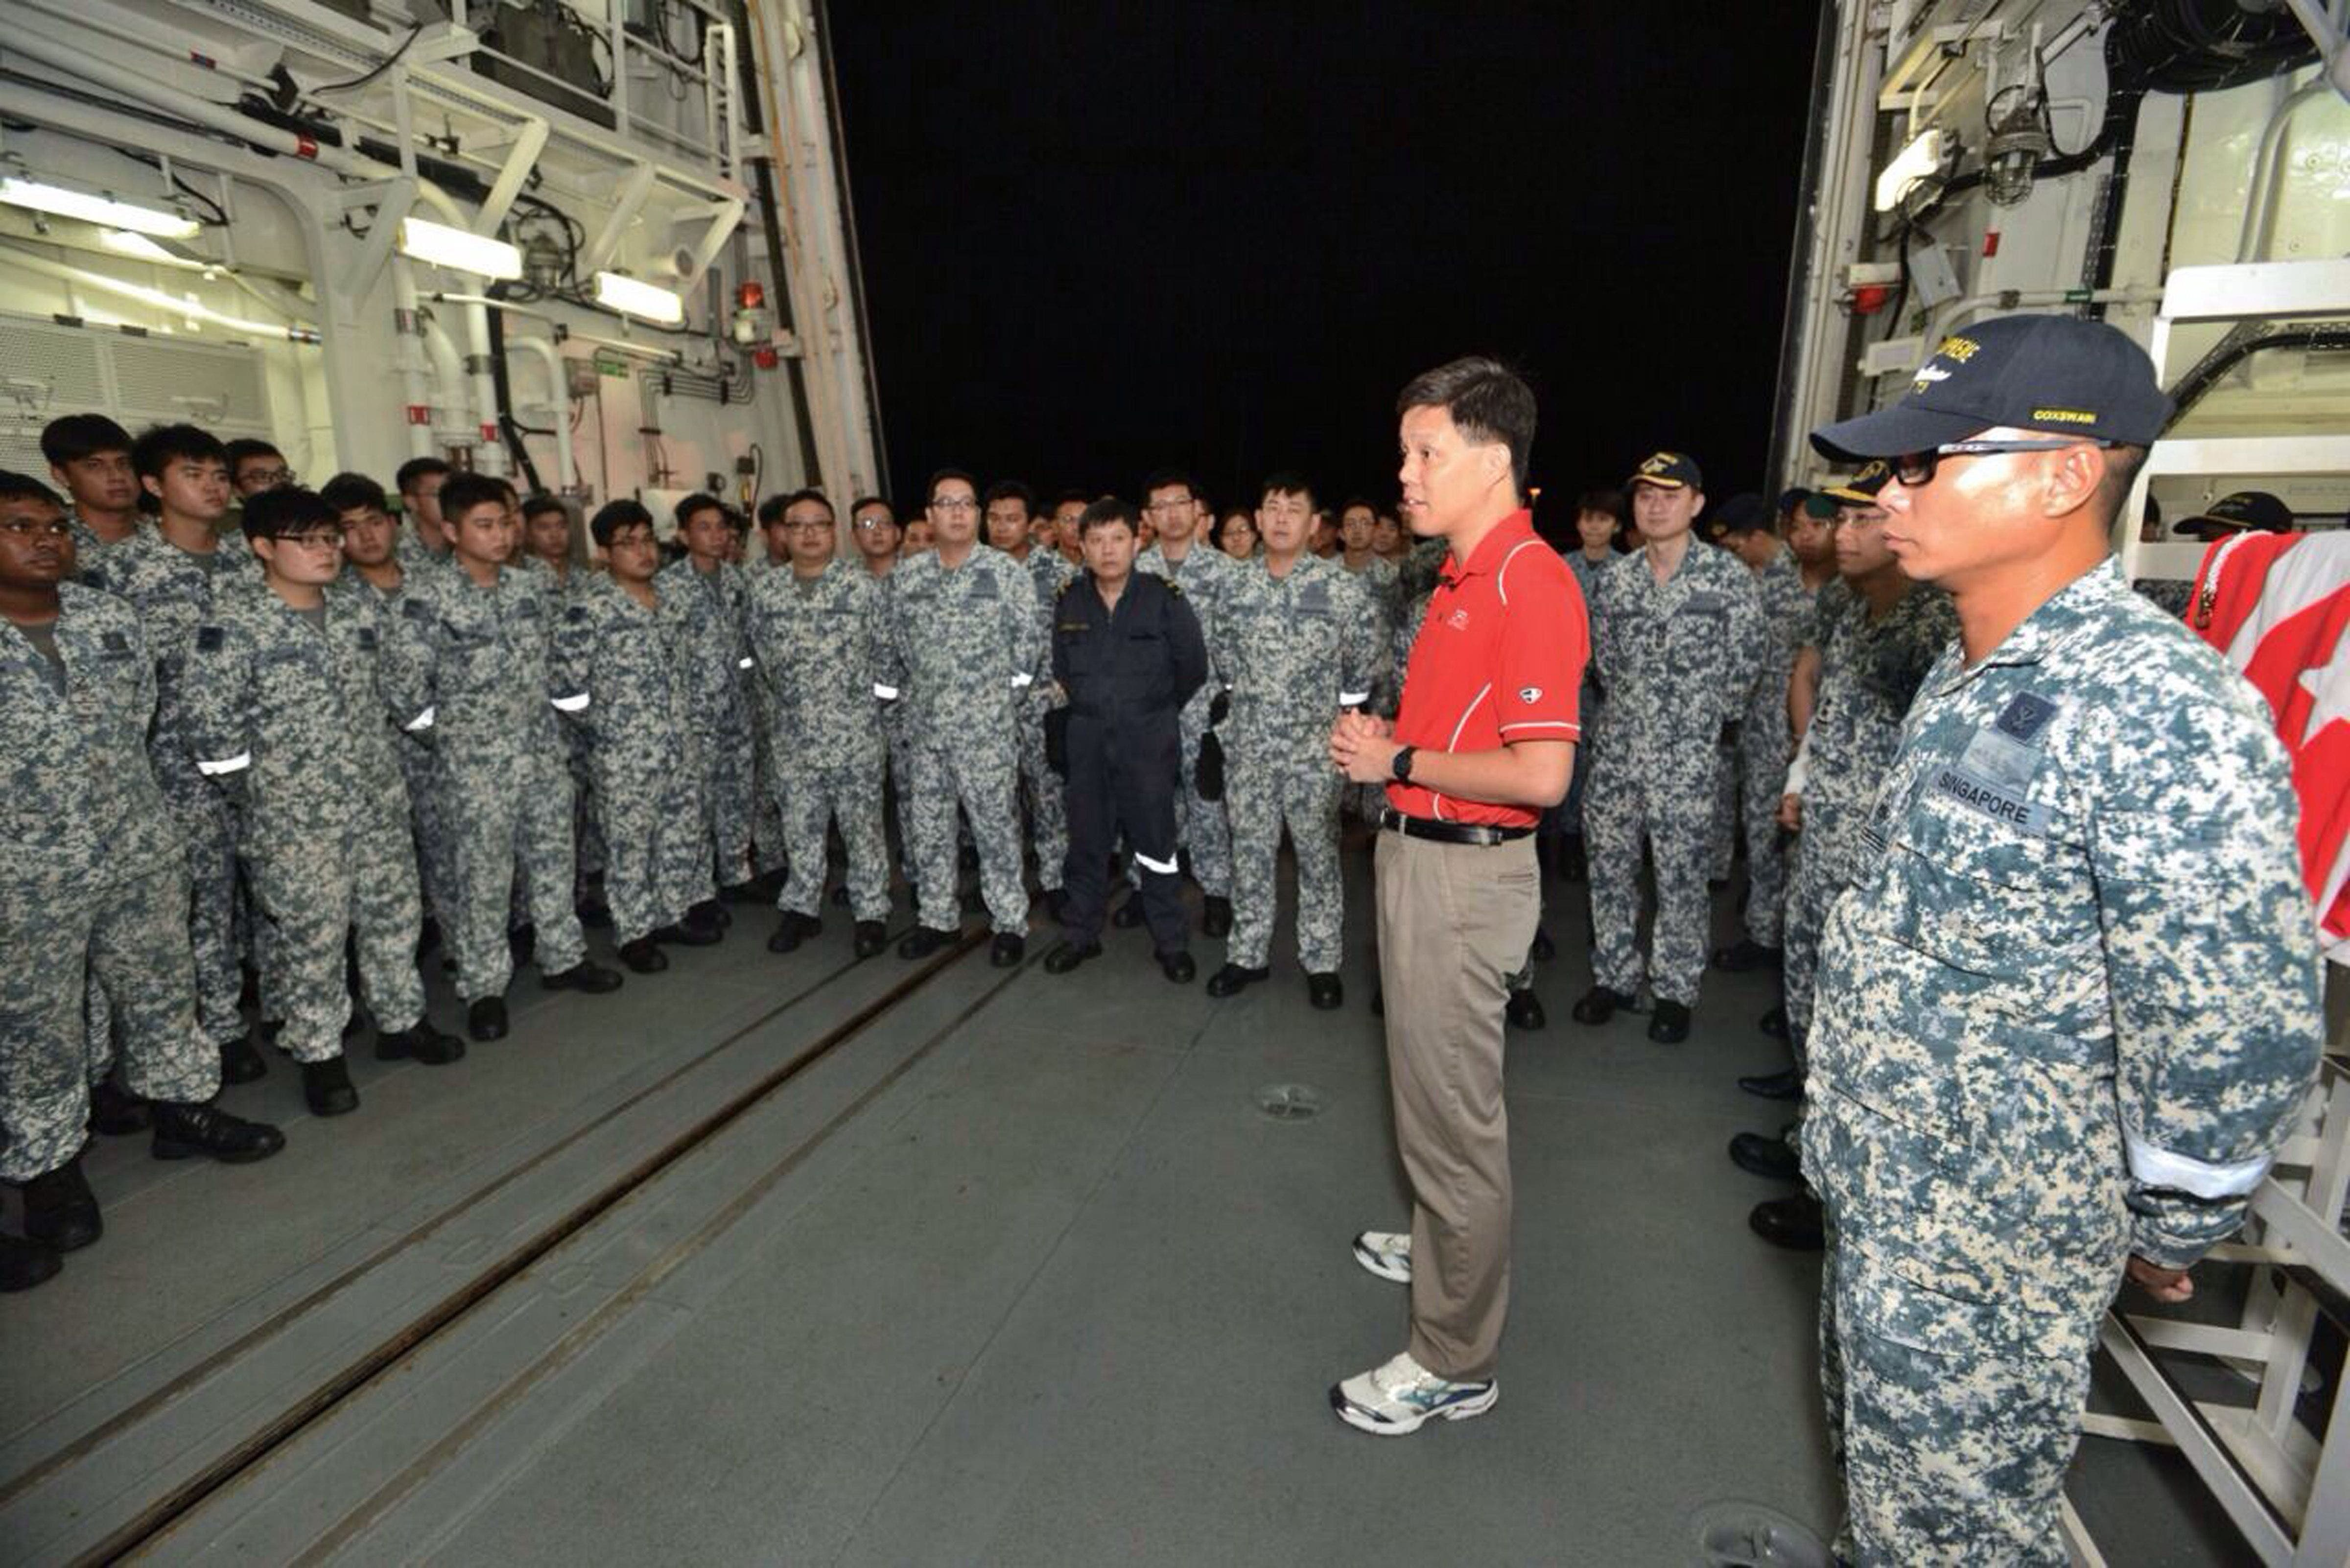 Second Minister for Defence Chan Chun Sing speaking with Republic of Singapore Navy (RSN) servicemen on board RSS Supreme before departing for Indonesia to take part in the search operation. (AFP)